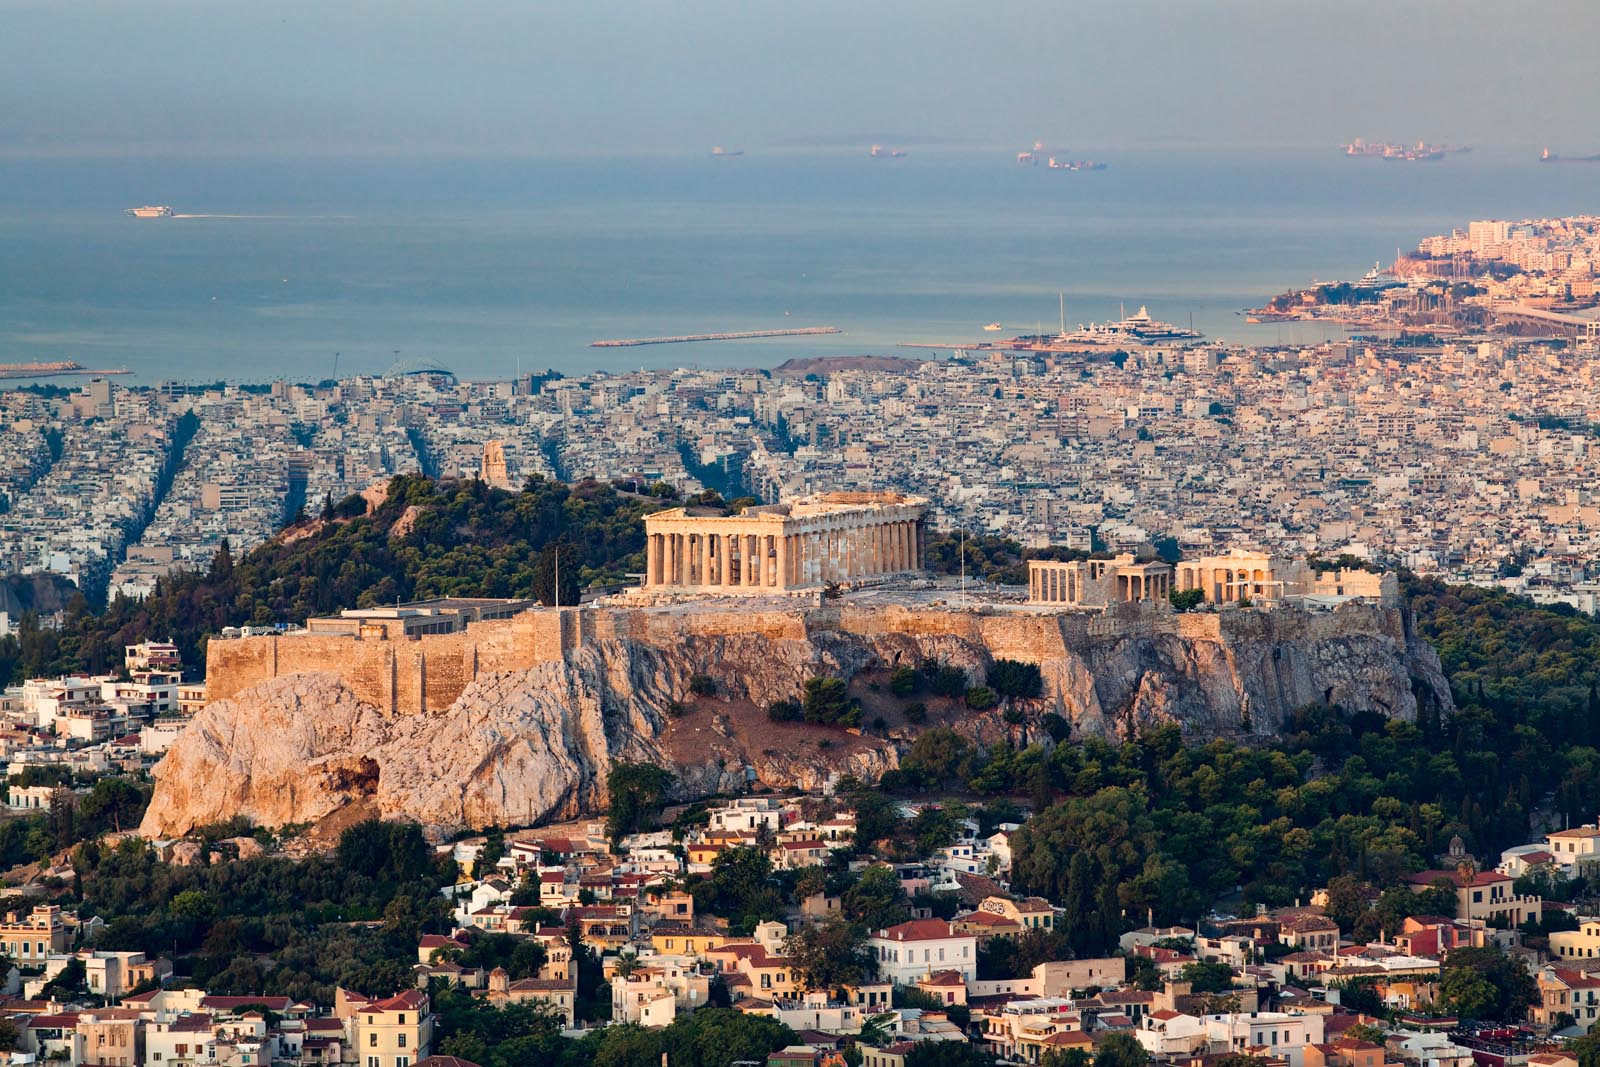 Enlarged - Acropolis in Greece with pireaus in background